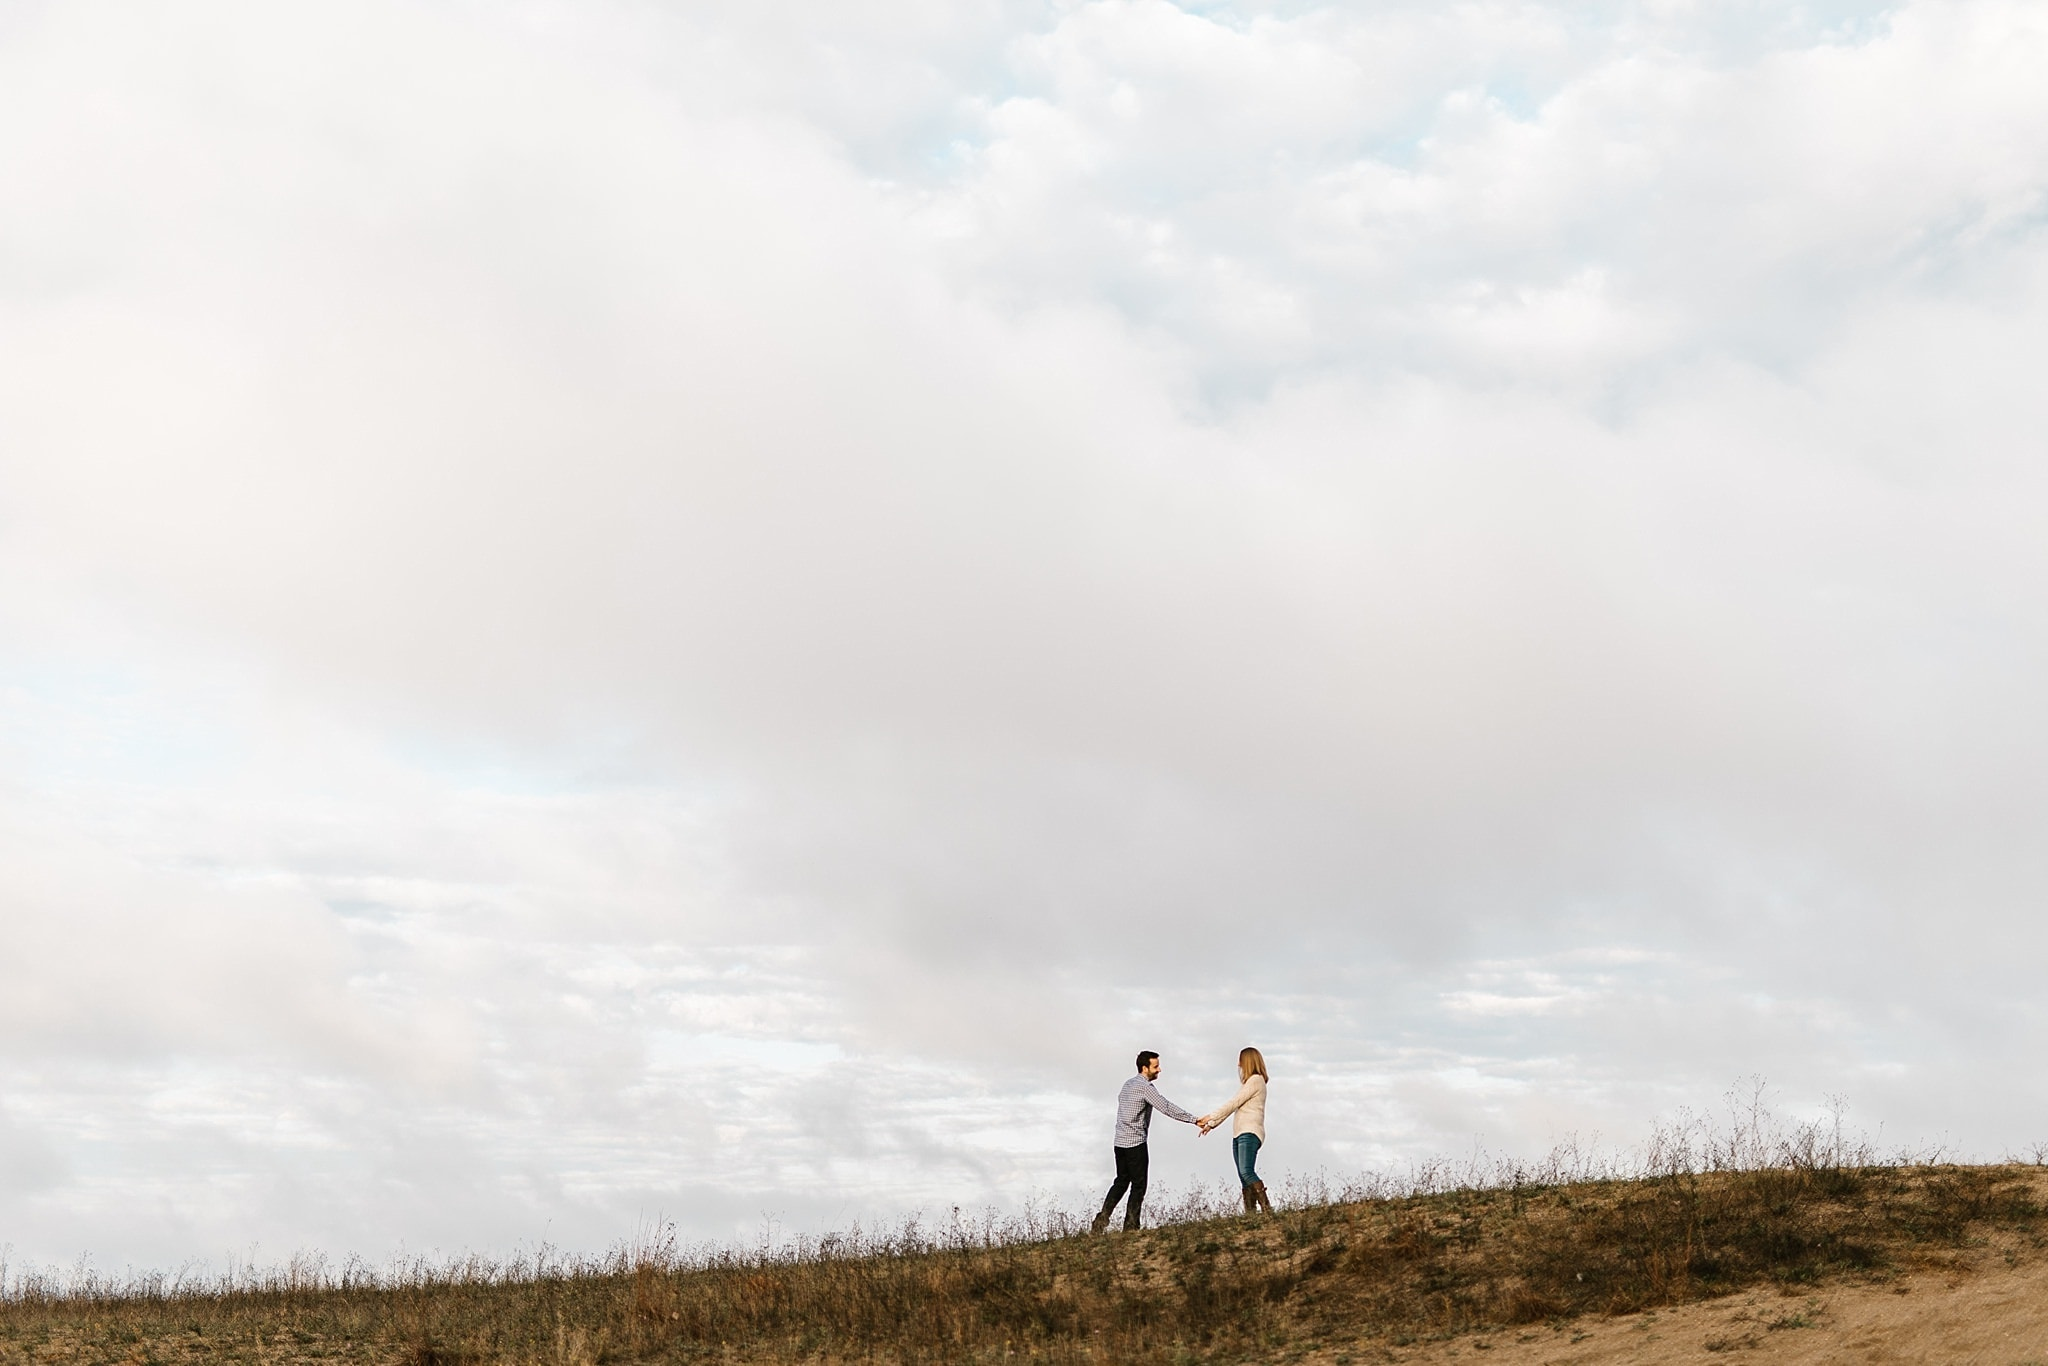 Desert Dune Badlands Engagement Photographer Destination Elopement photographer romantic intimate michigan wedding photographer ME+HIM Photography Detroit Ann Arbor Grand Rapids Ludingtin Traverse City Moab Utah Joshua Tree